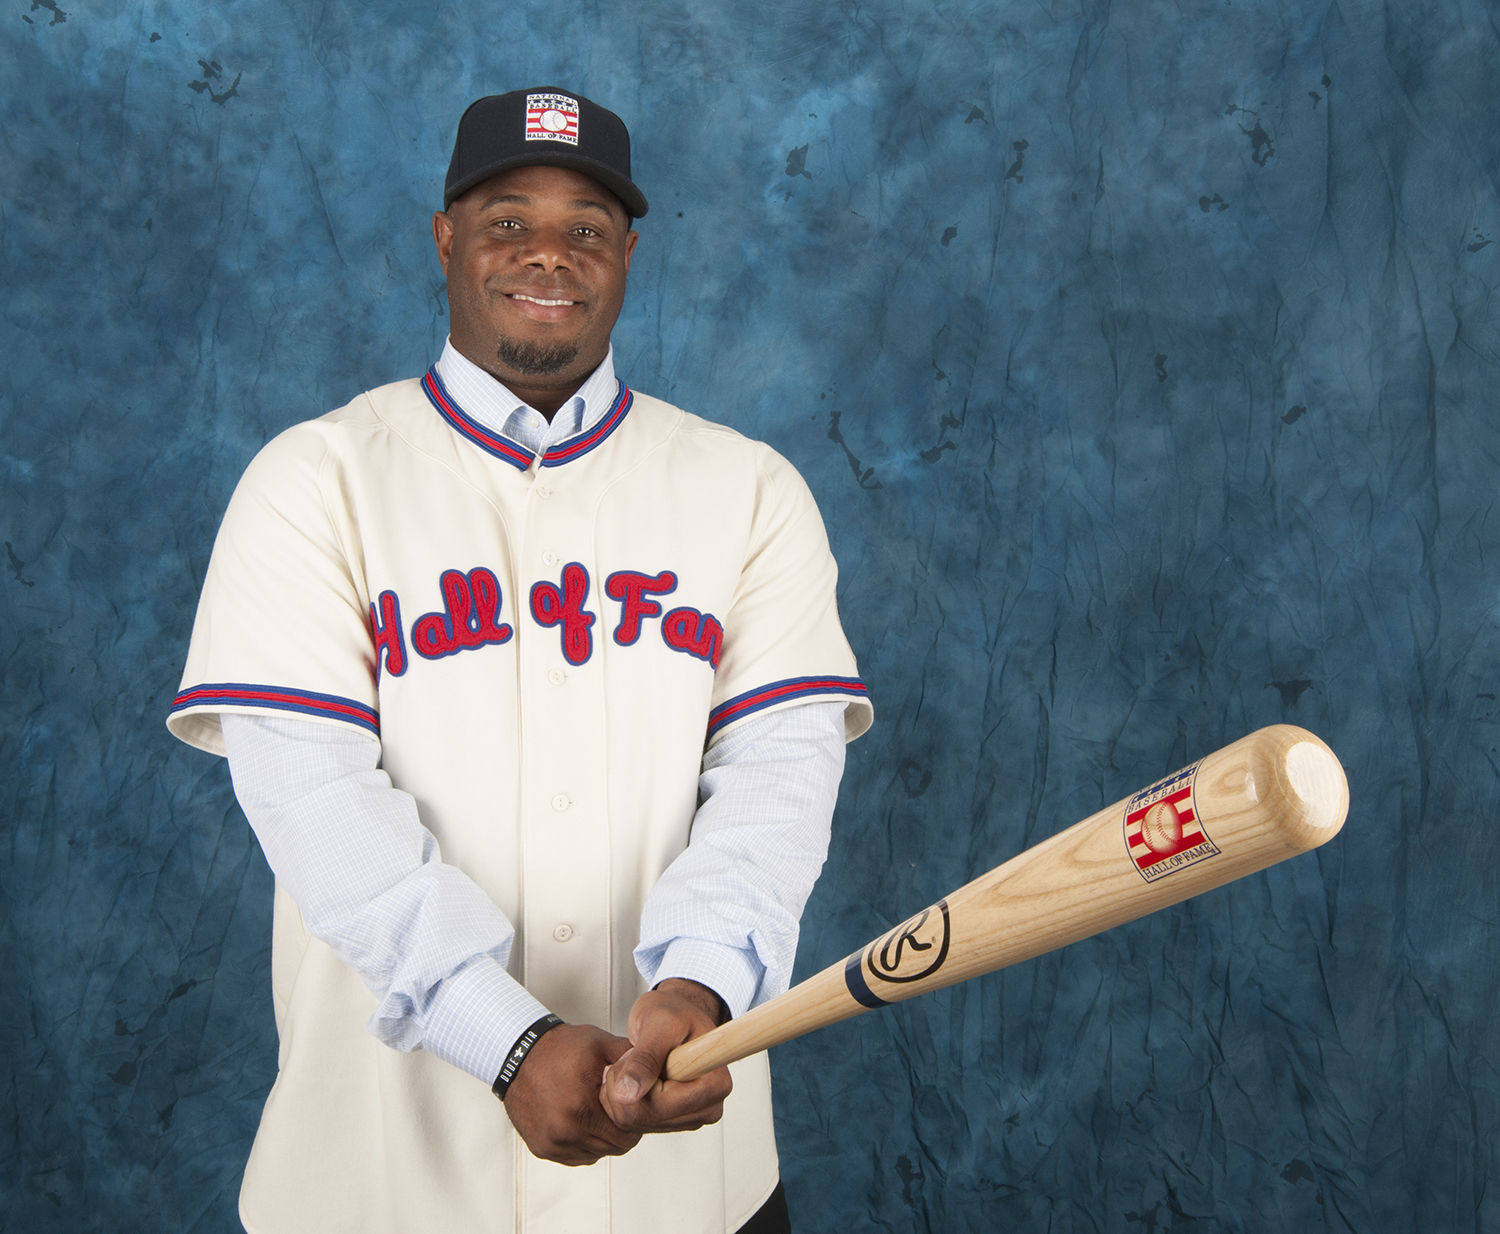 de19f05584 Ken Griffey Jr. received a record 99.32 percent of the vote from the BBWAA  in January, and will be inducted alongside Piazza in July. (National  Baseball ...